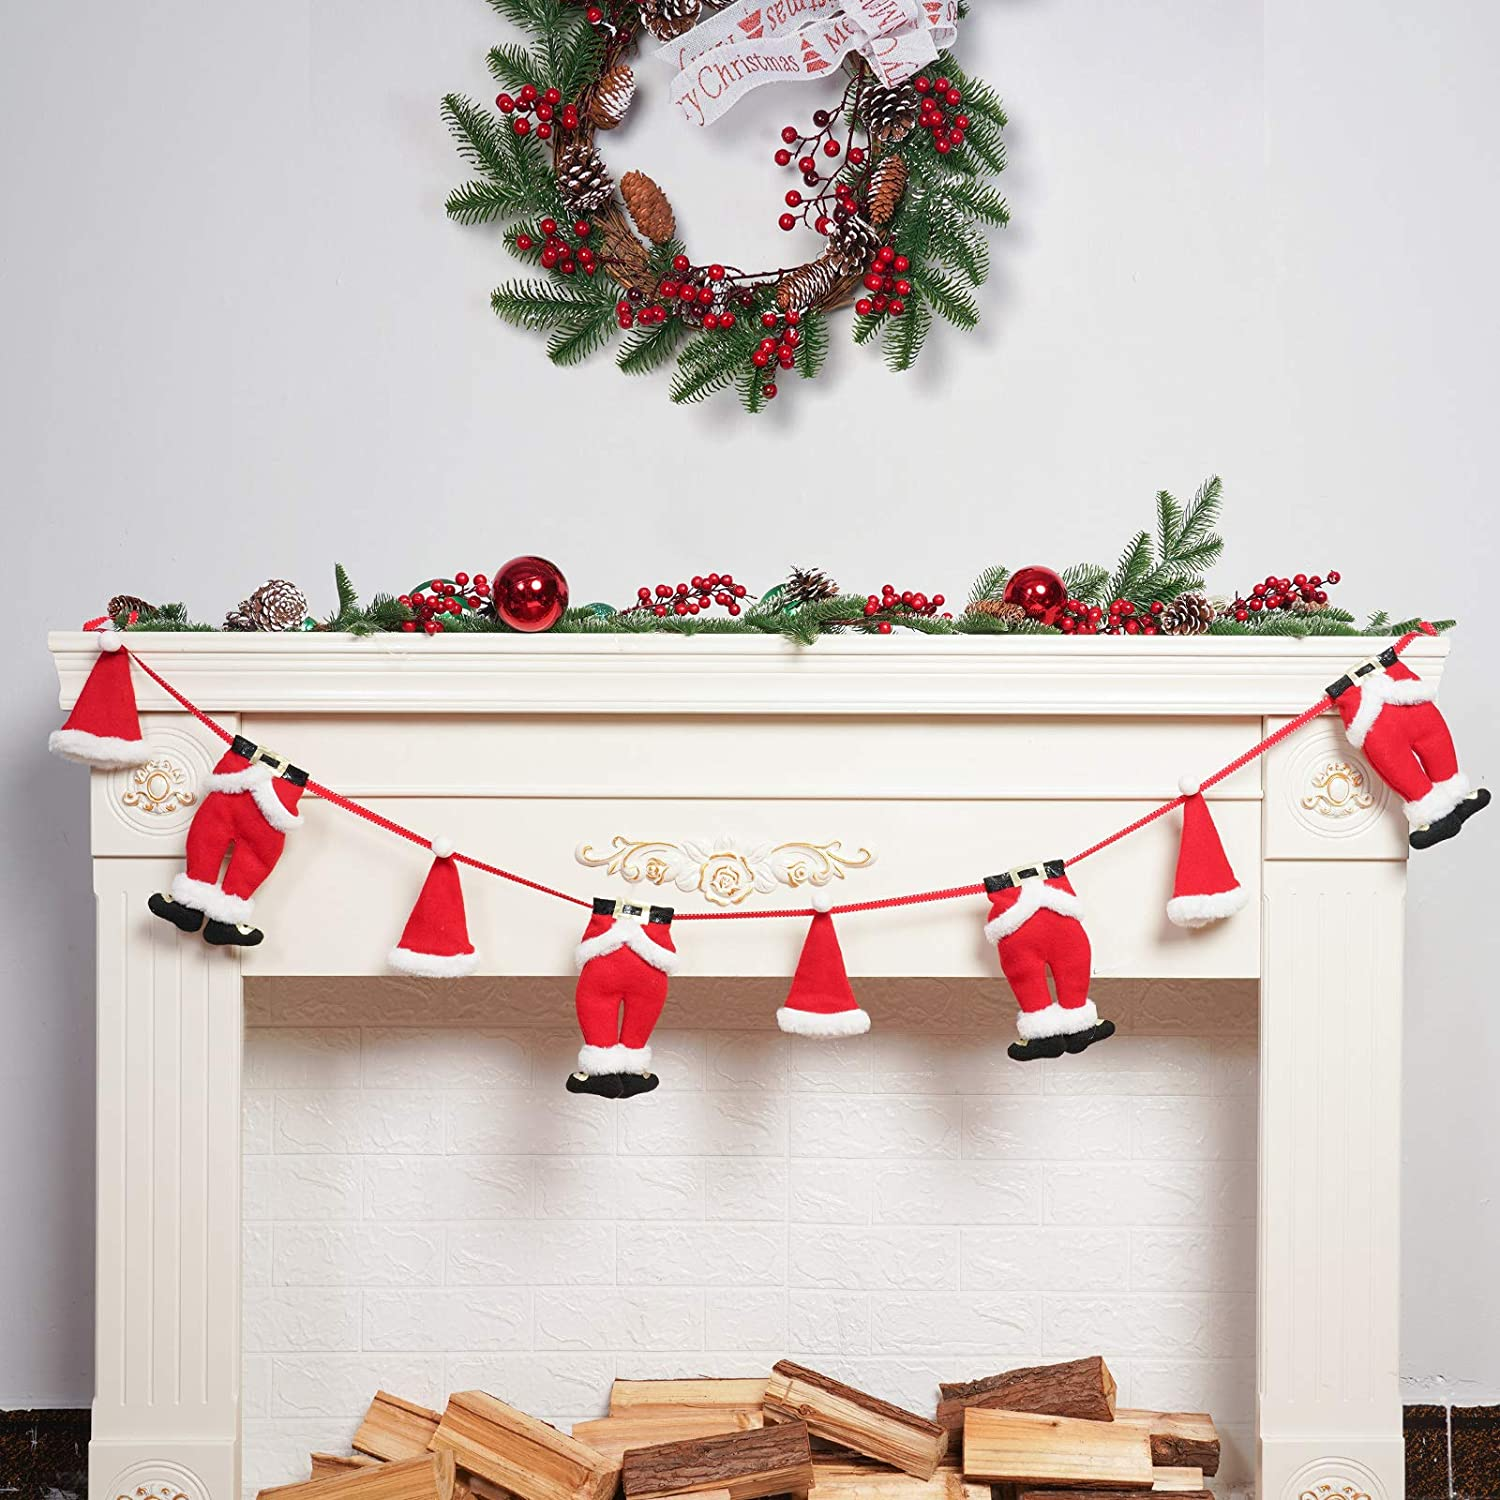 ALLYORS Christmas Graland Mini Outfits Clothesline Garland, Santa/ELF/Snowman Laundry String Banner for Xmas Classic Themed Home Decoration & Ornament on Fireplace/Wall (Santa)